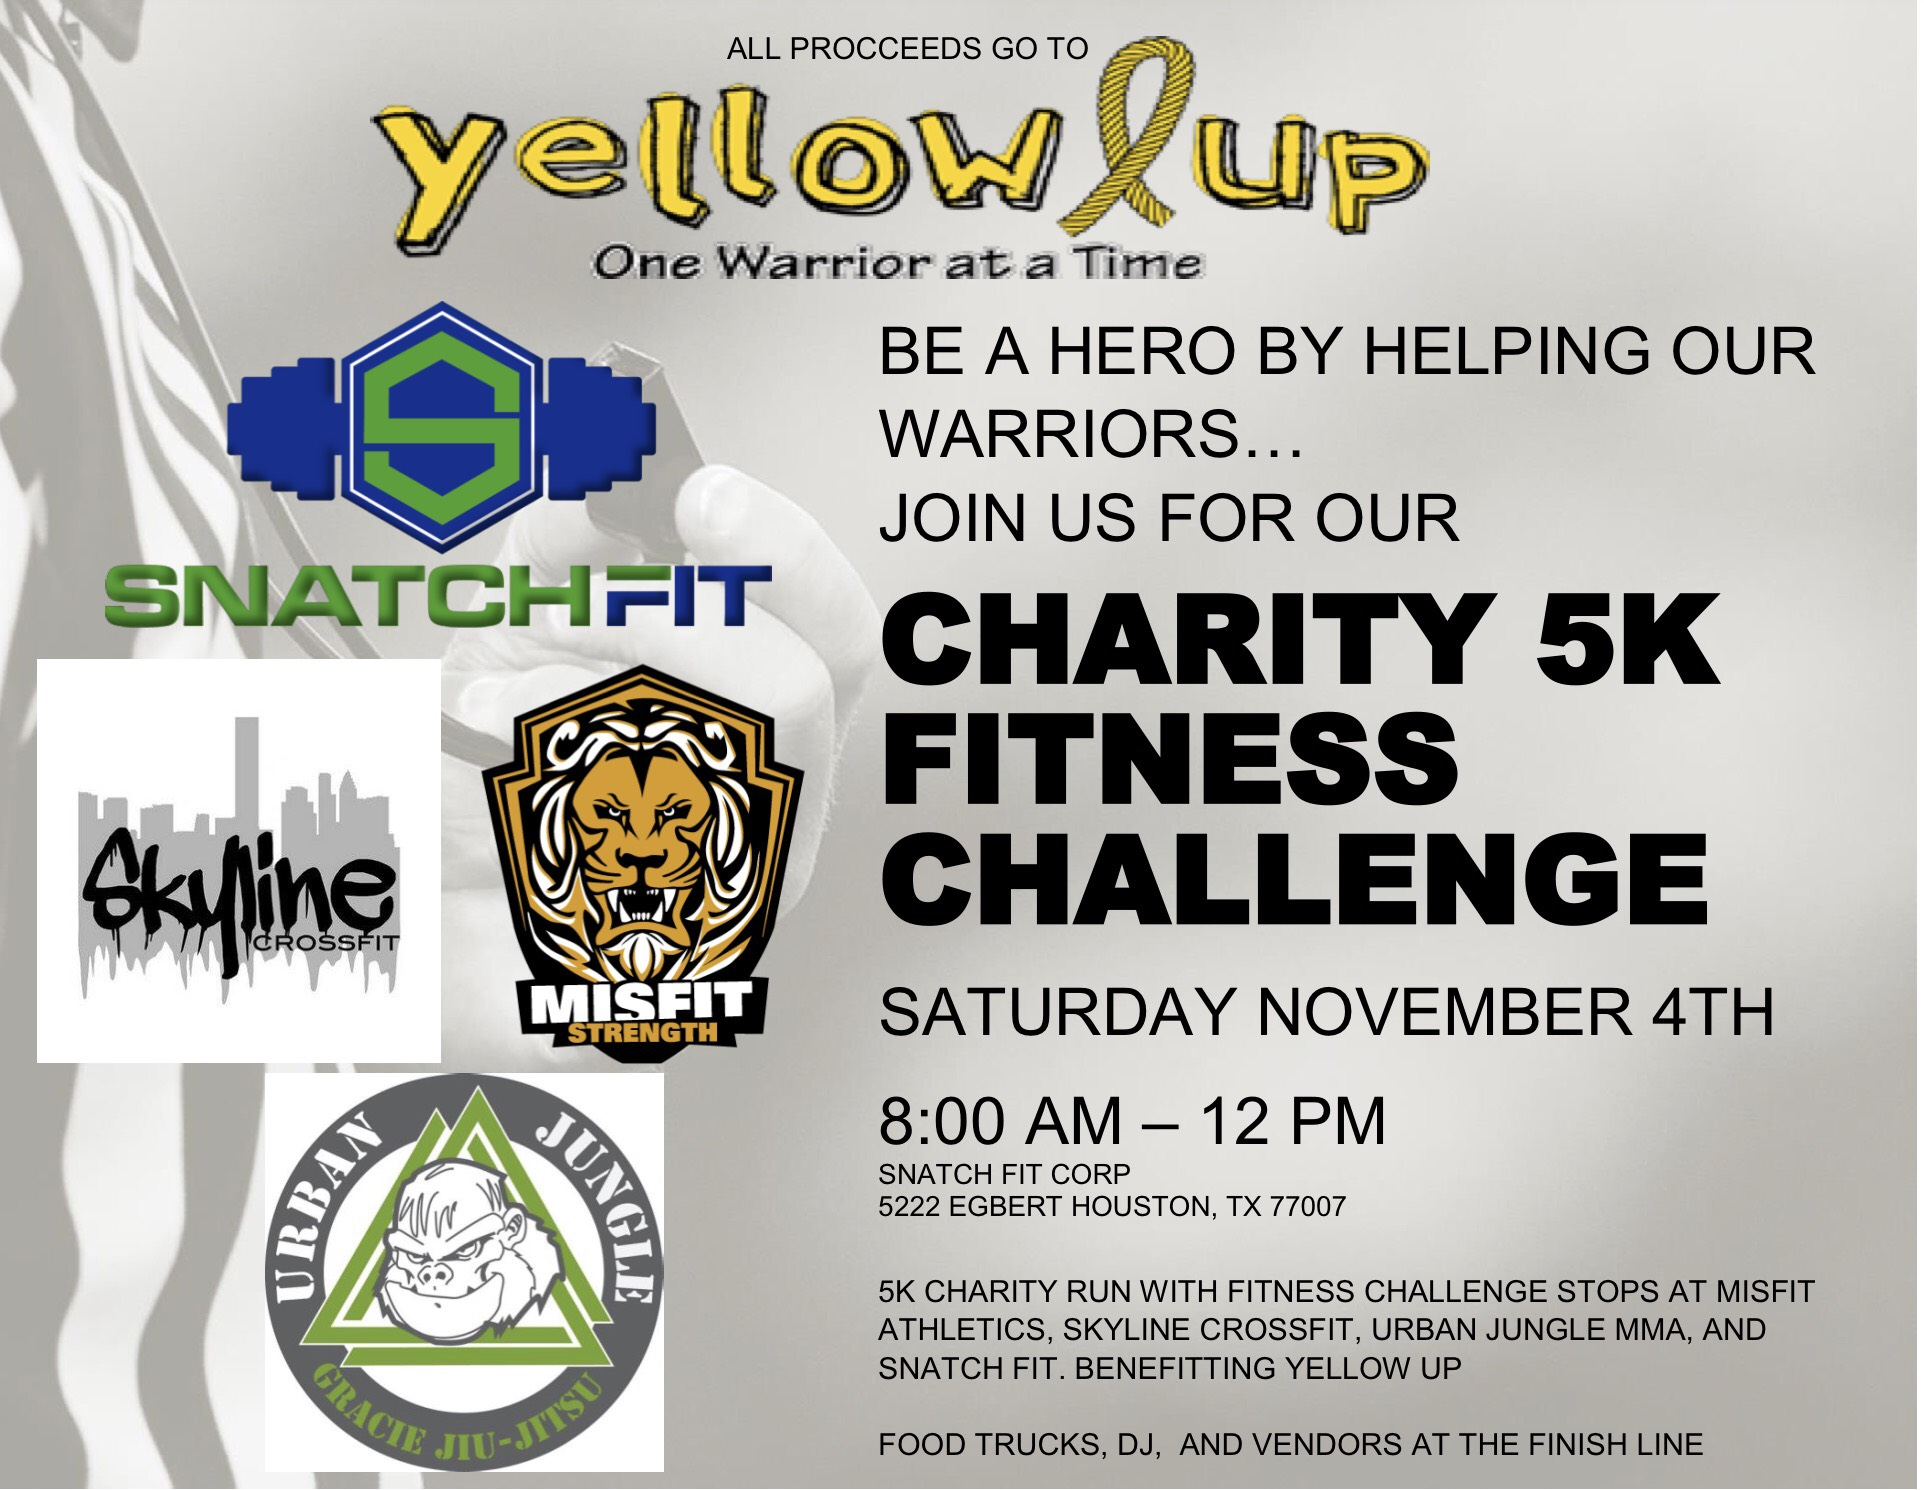 There will be no class Saturday due to Charity 5k.